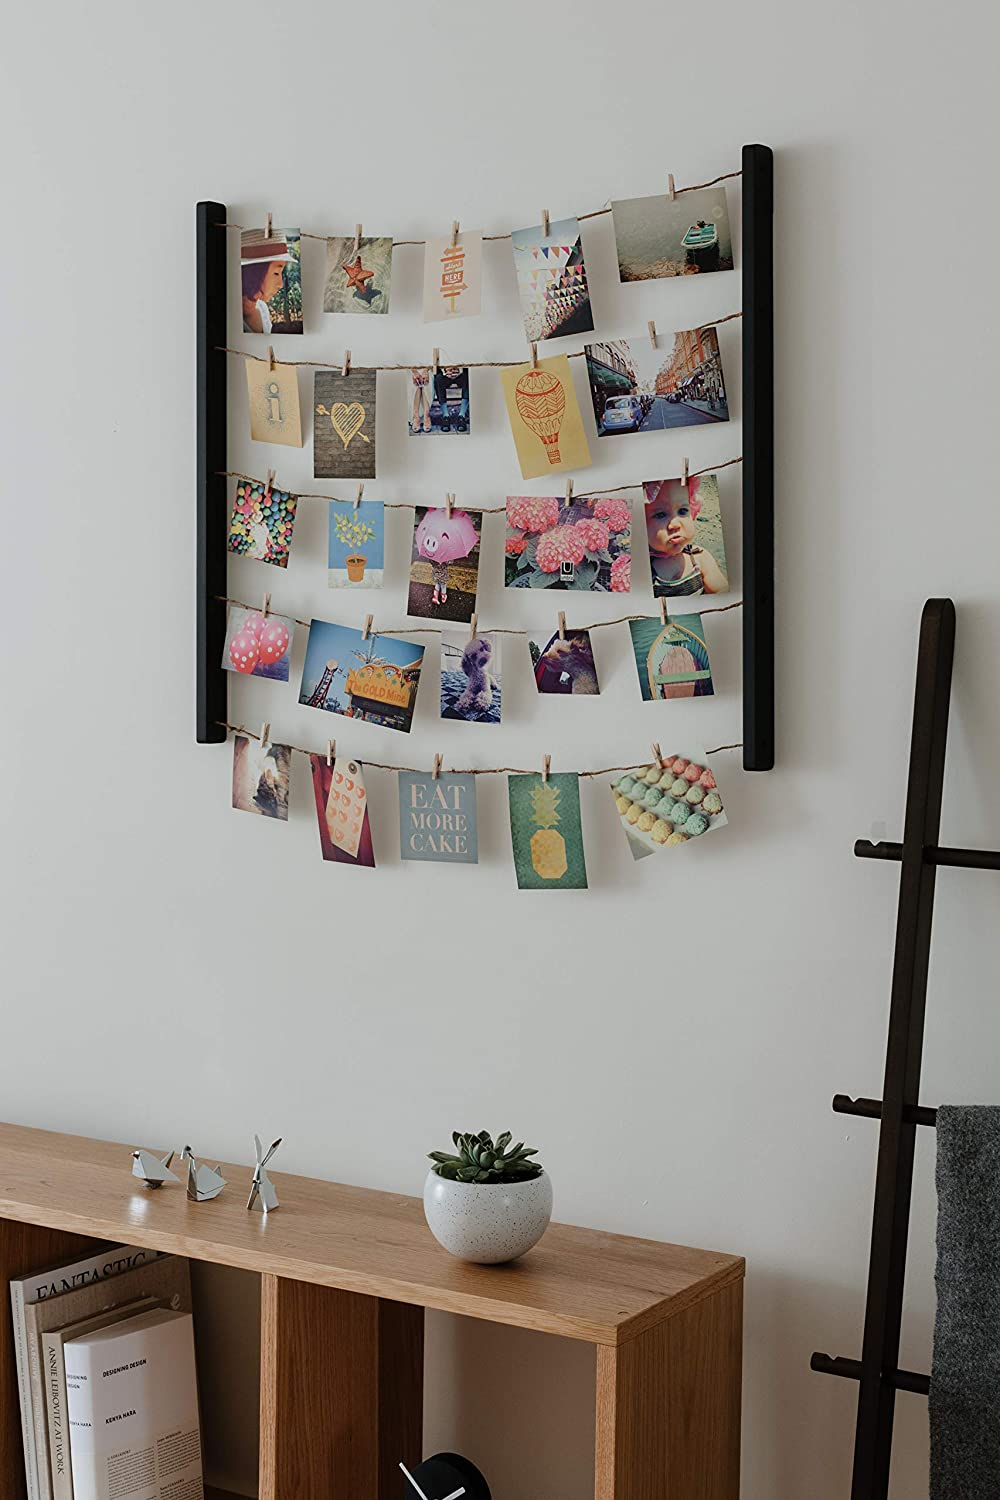 Amazon Com Umbra Hangit Display Diy Frames Collage Set Includes Picture Wire Twine Cords Wall Mounts And Clothespin Clips For Hanging Photos Prints And Artwork 26 X 30 Black Home Kitchen